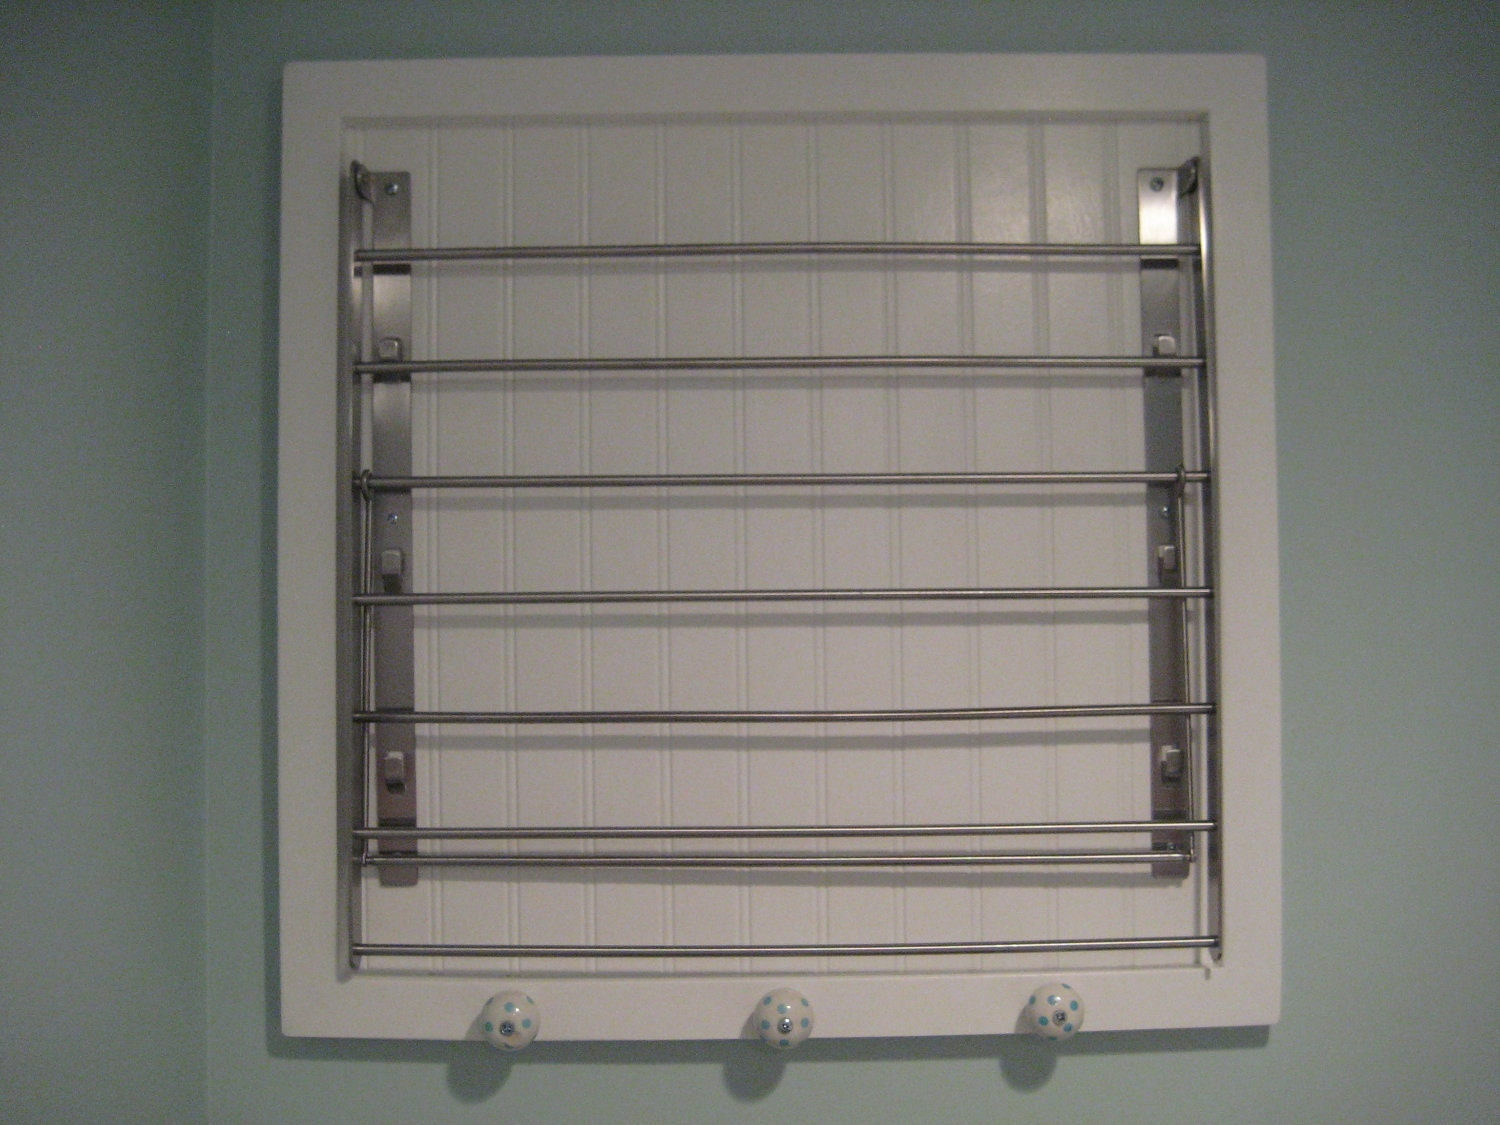 Wall Mounted Clothes Drying Rack Plans